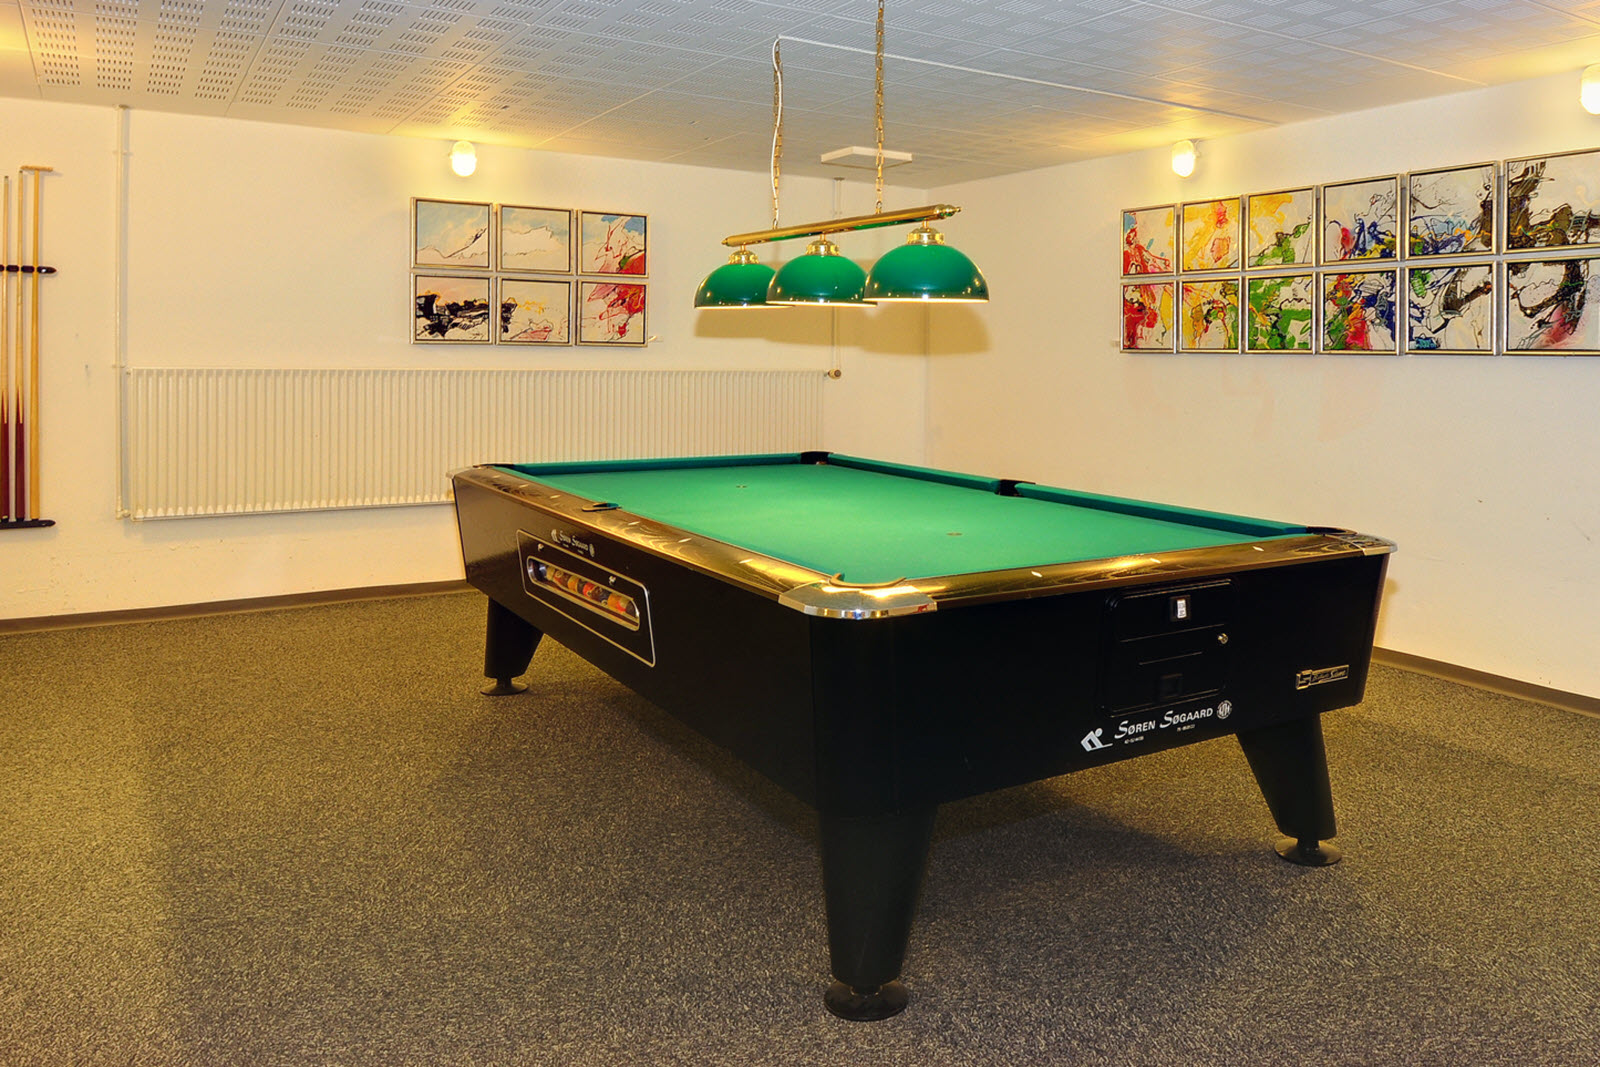 Scandic Sonderborg, activity room, pool table